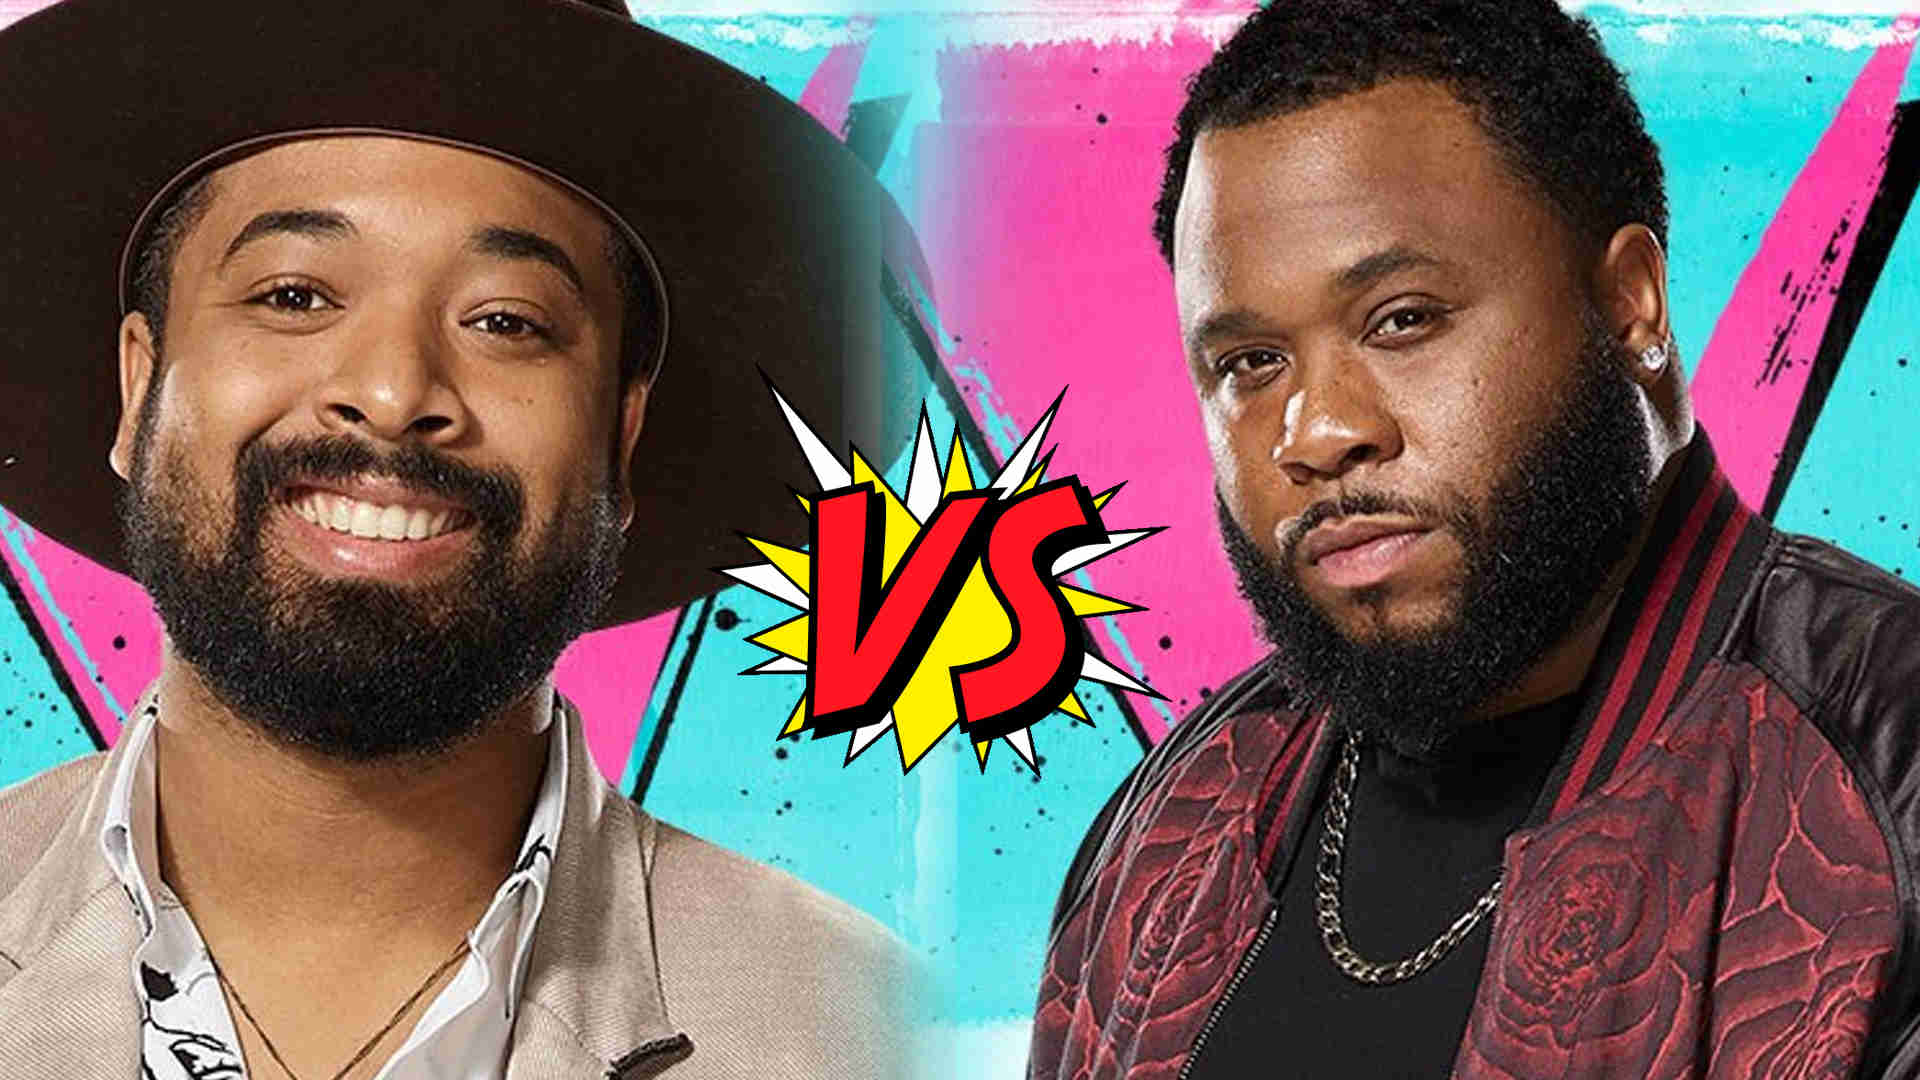 Darious Lyles and Nelson Cade III (Come Together) The Voice USA 2020 Battles Episode 2 Full Performance Video